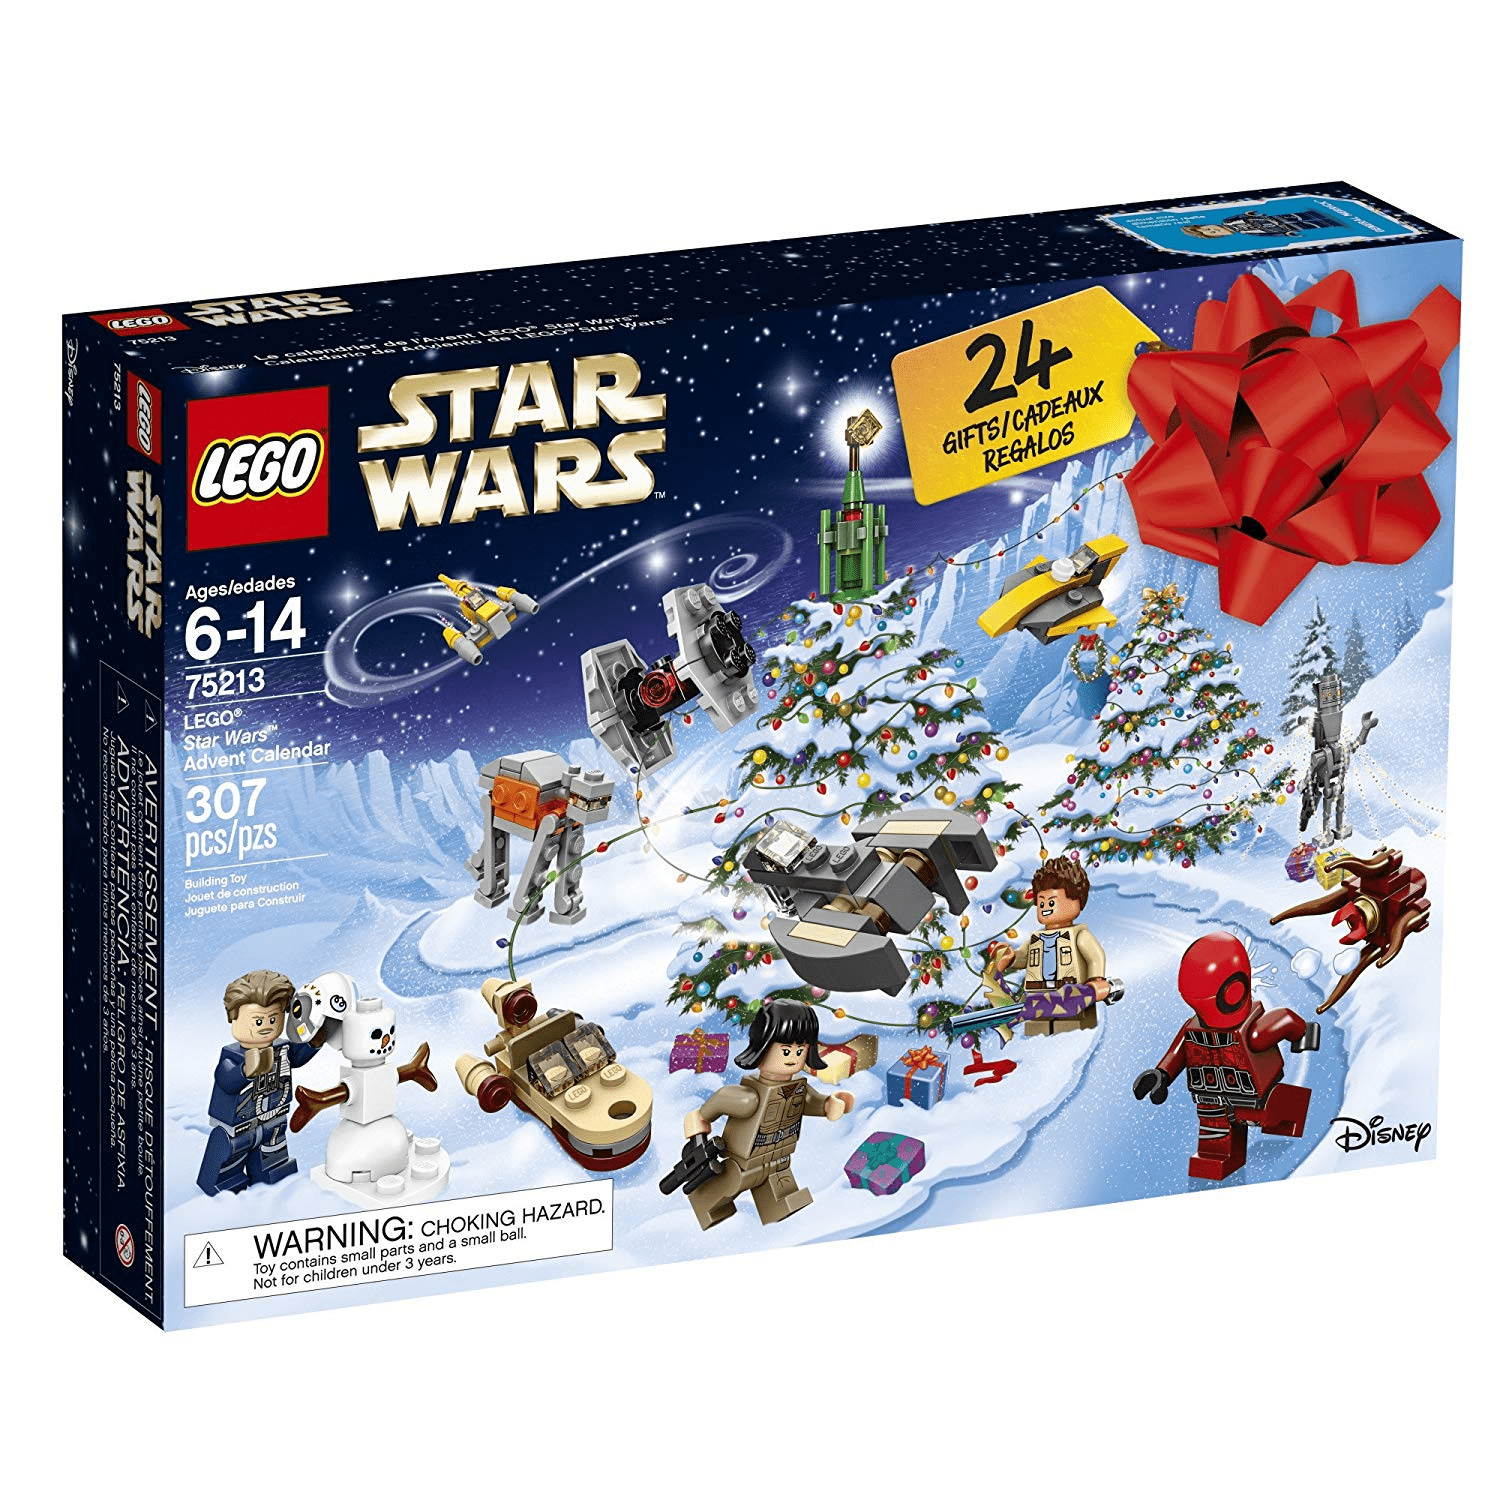 Star Wars Lego 2018 Advent Calendar Available Now!